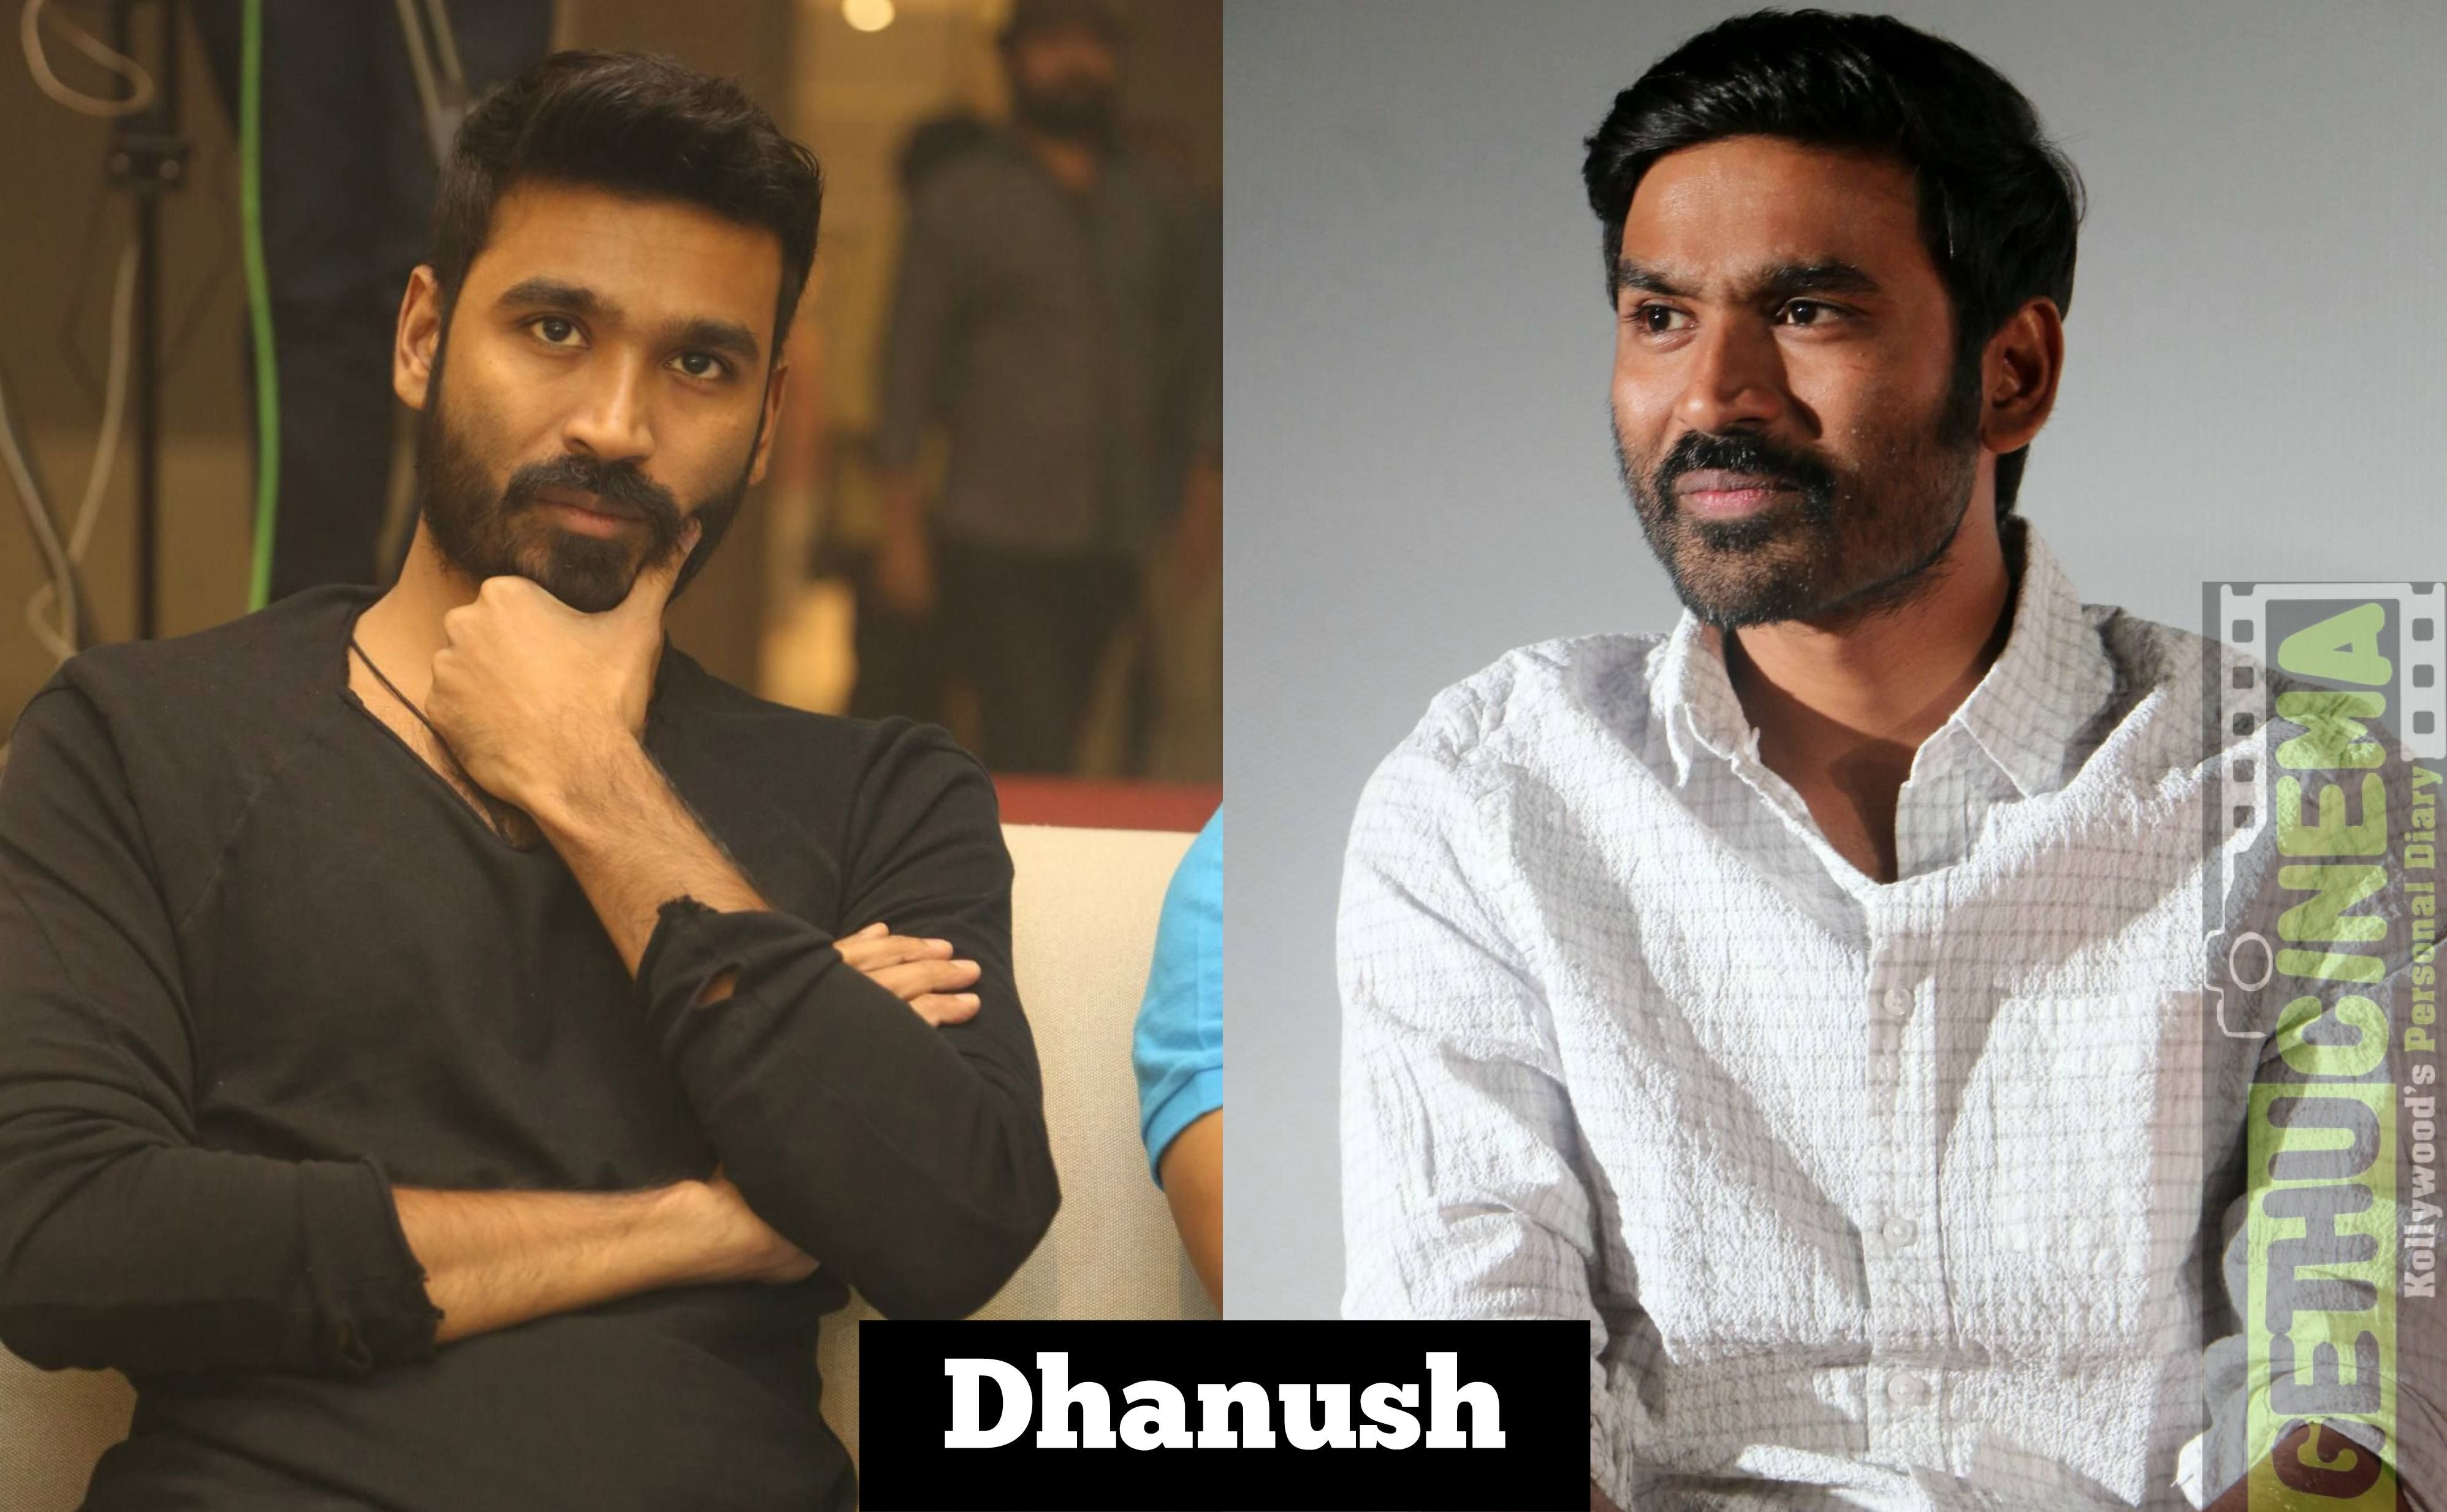 actor dhanush latest new hd images | actors gallery | pinterest | hd